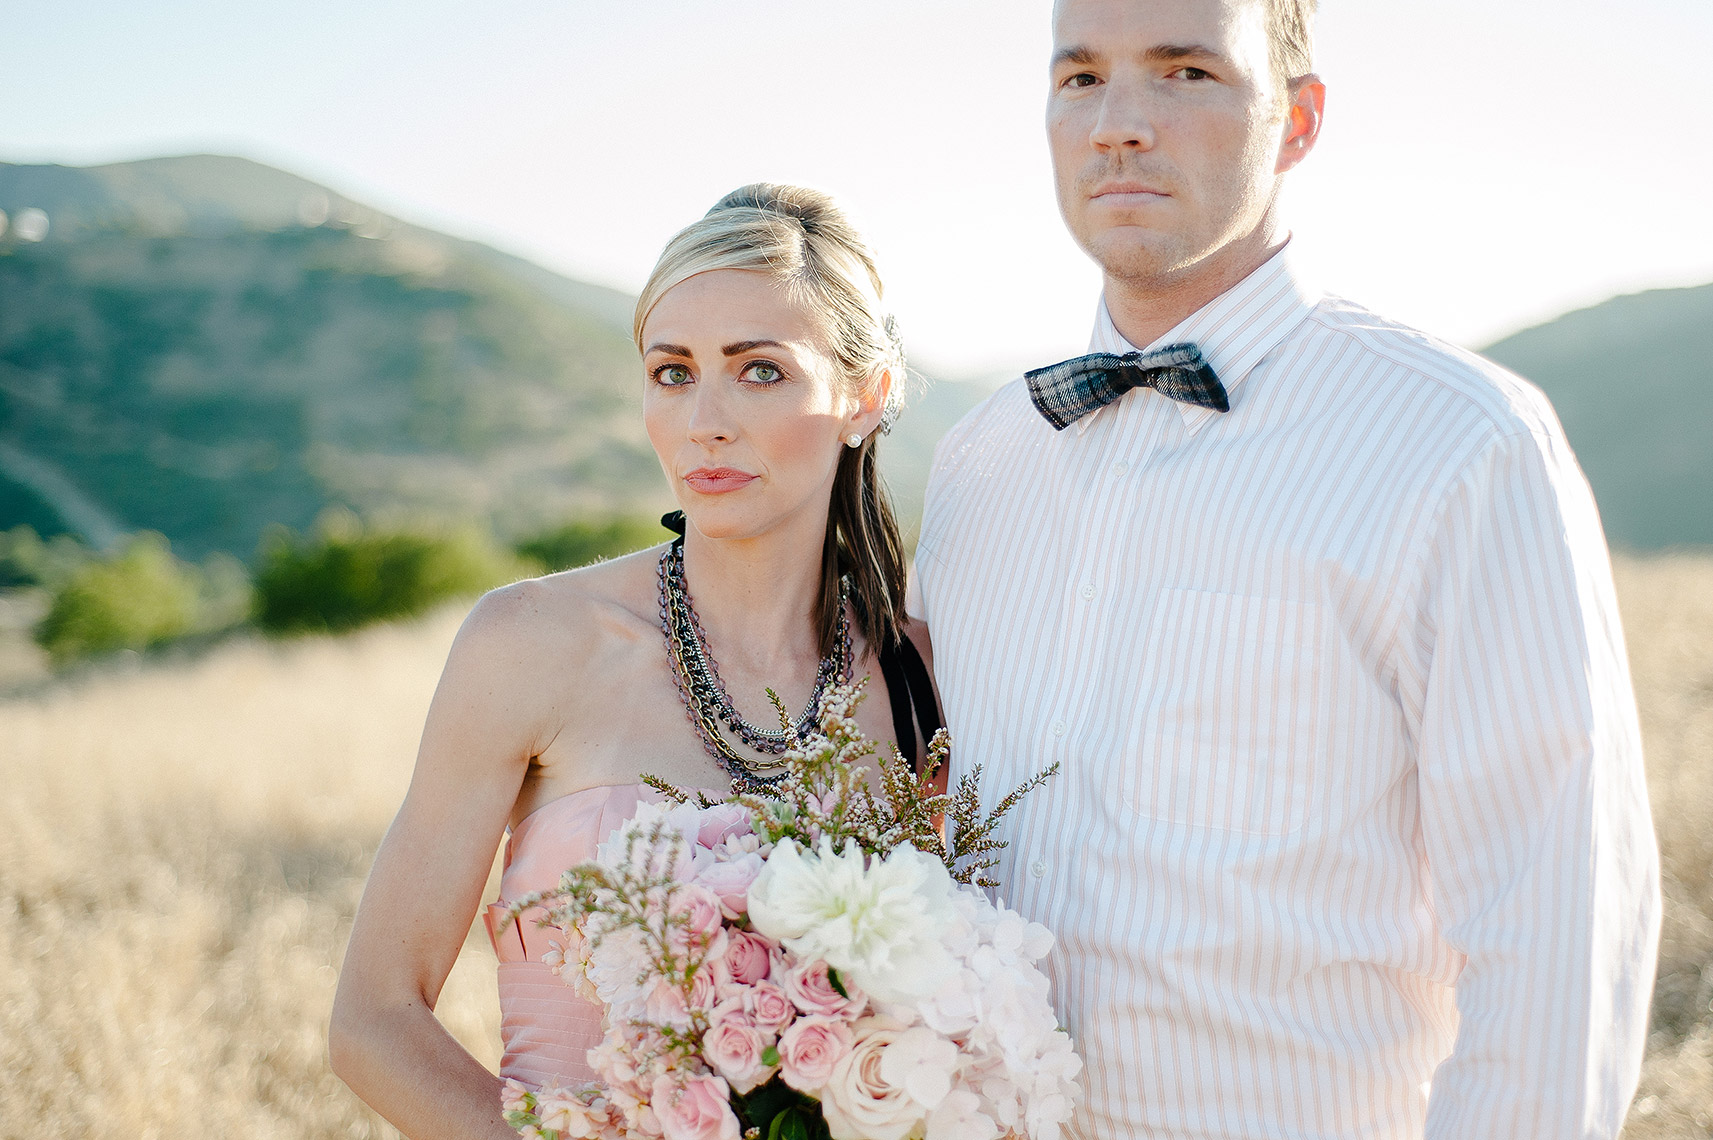 john-schnack-photography-san-diego-wedding-inspiration-shoot-back-country-vintage-wedding-34